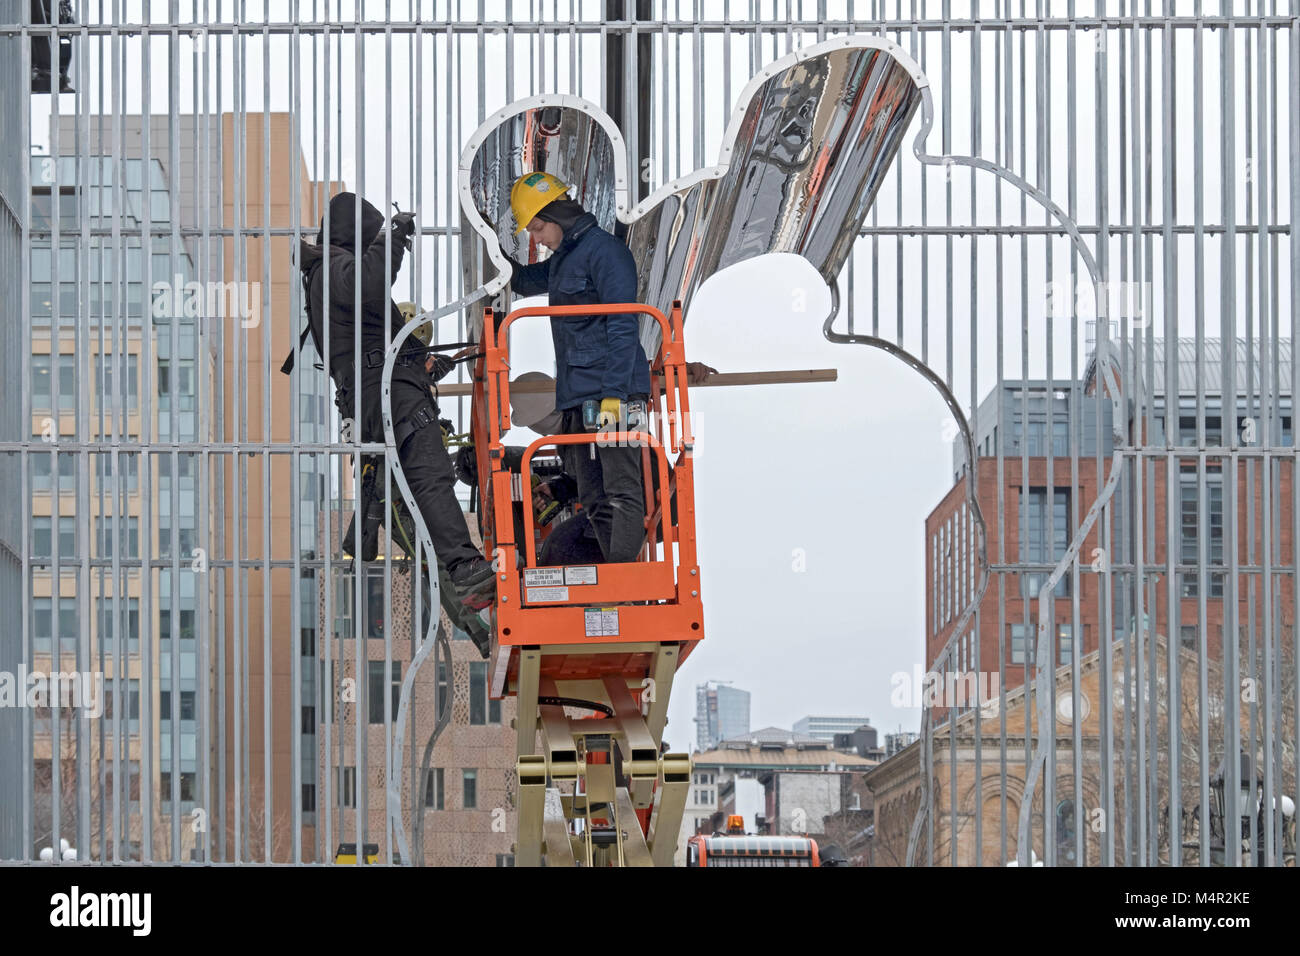 Workman dismantling the Ai Weiwei installation under the arch in Washington Square Park in Greenwich Village, New - Stock Image